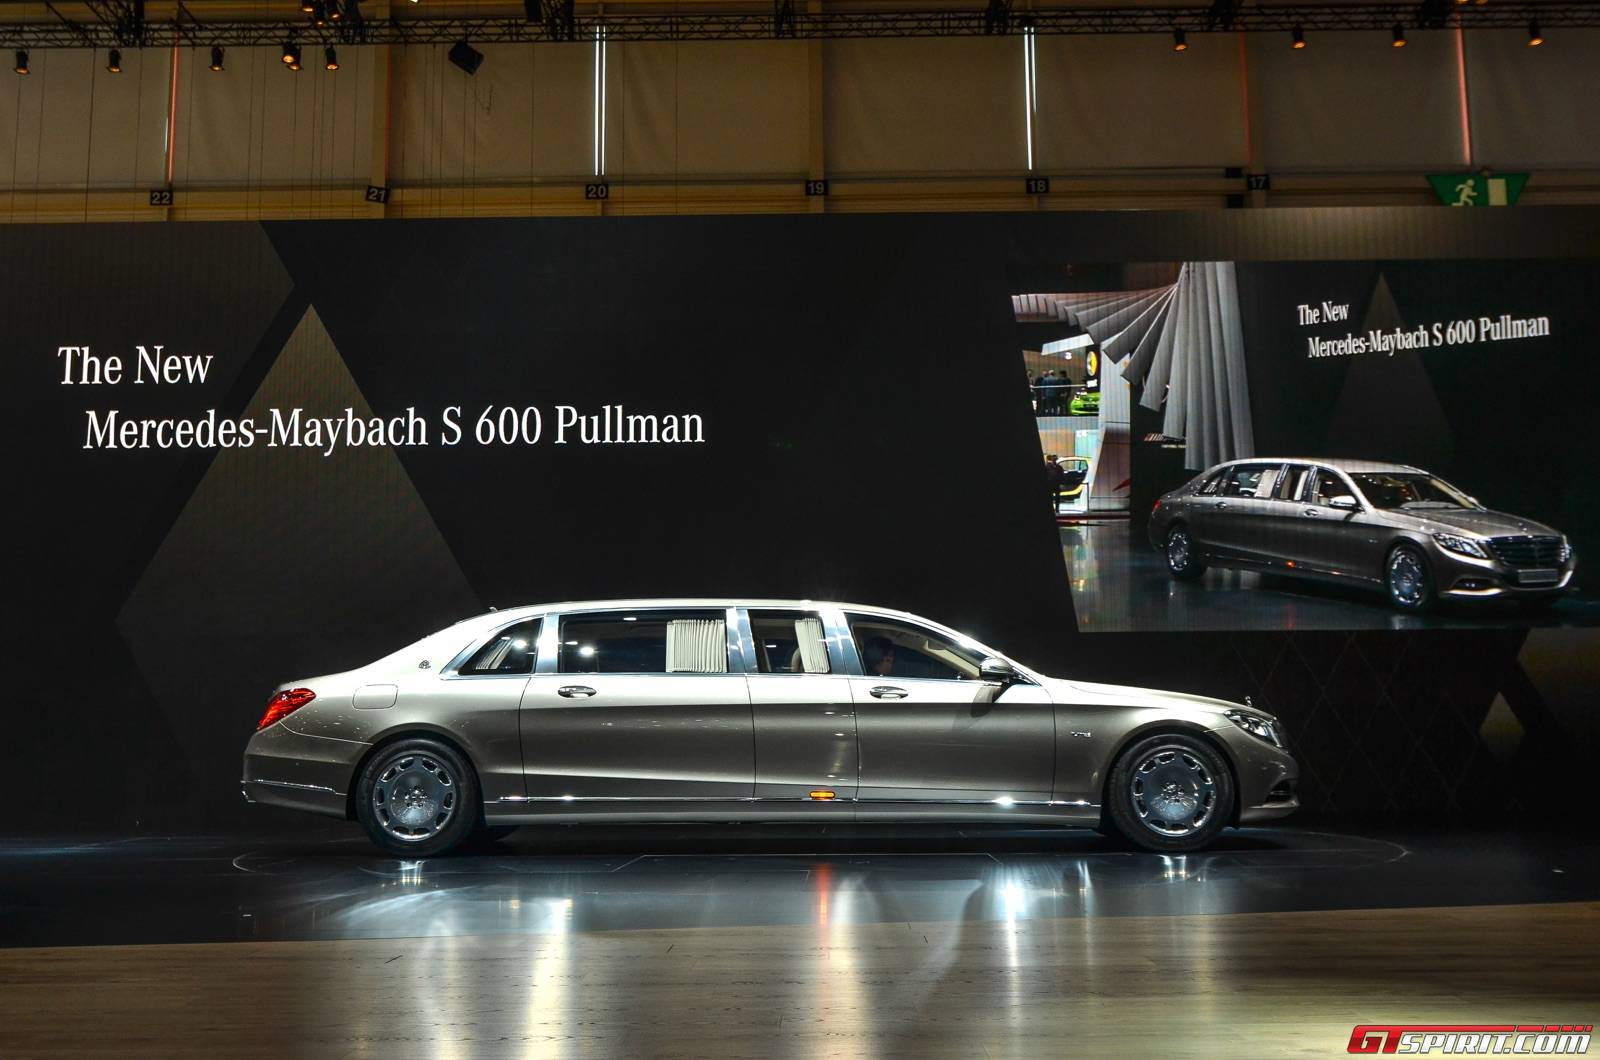 https://storage.googleapis.com/gtspirit/uploads/2015/03/mercedes-benz-s-600-pullman4.jpg